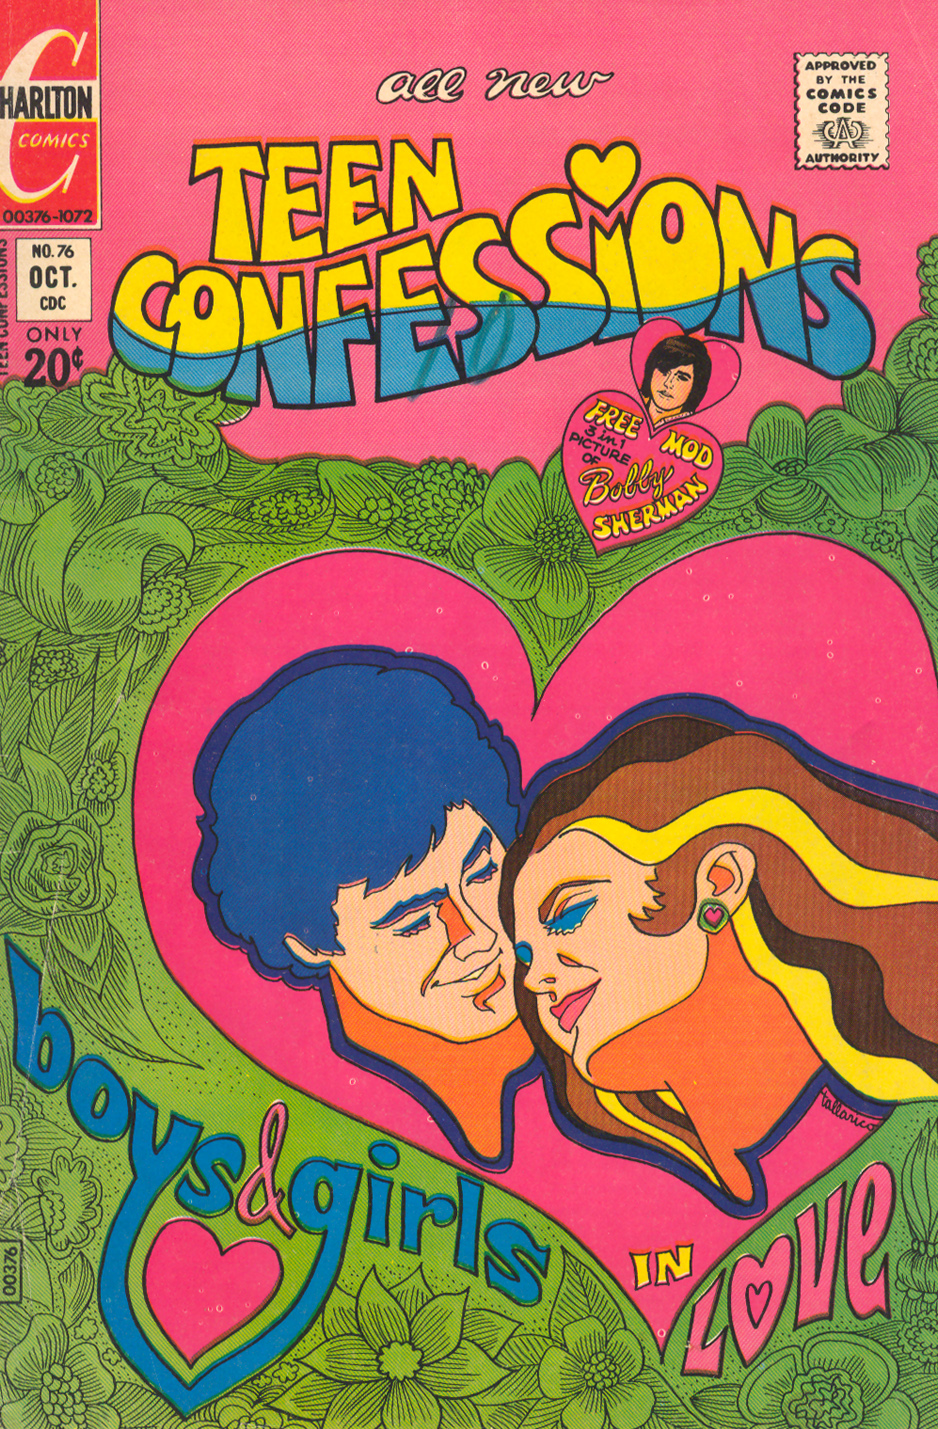 Teen Confessions  #76 (October 1972) Illustrated by: Tony Tallarico